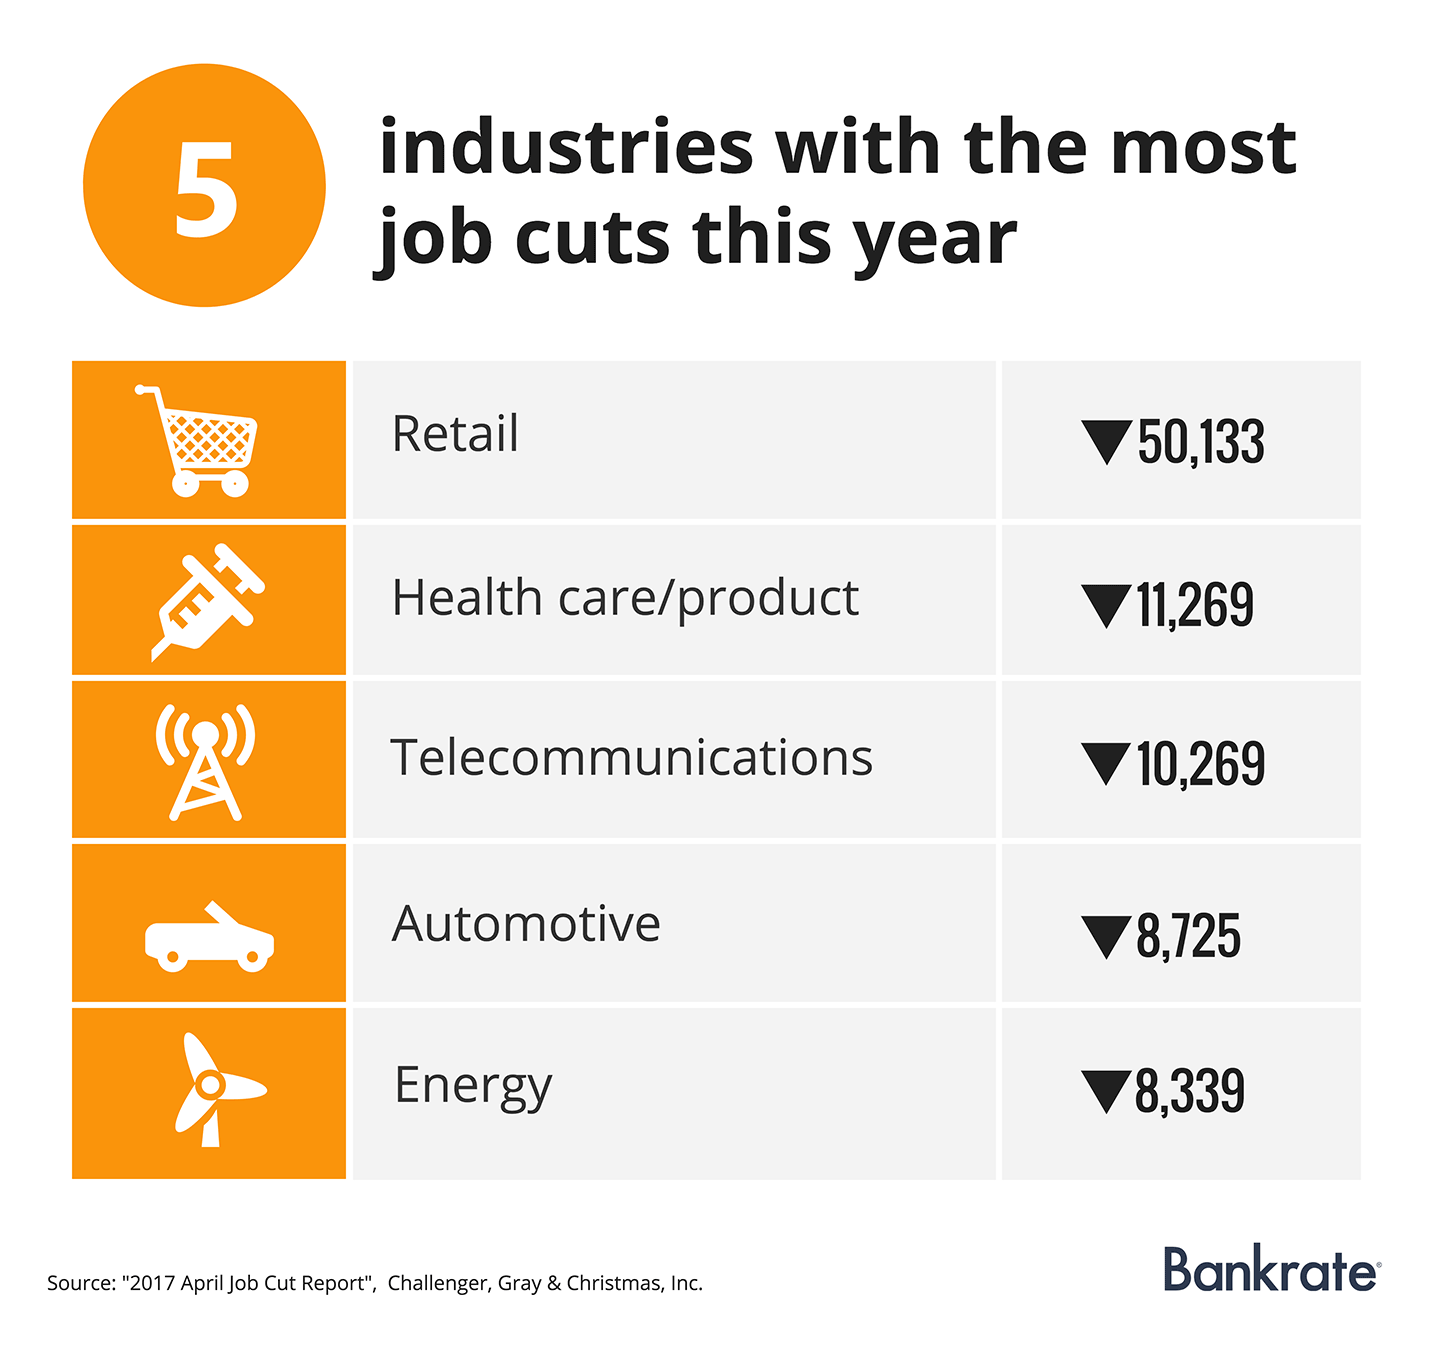 5 industries with the most job cuts this year